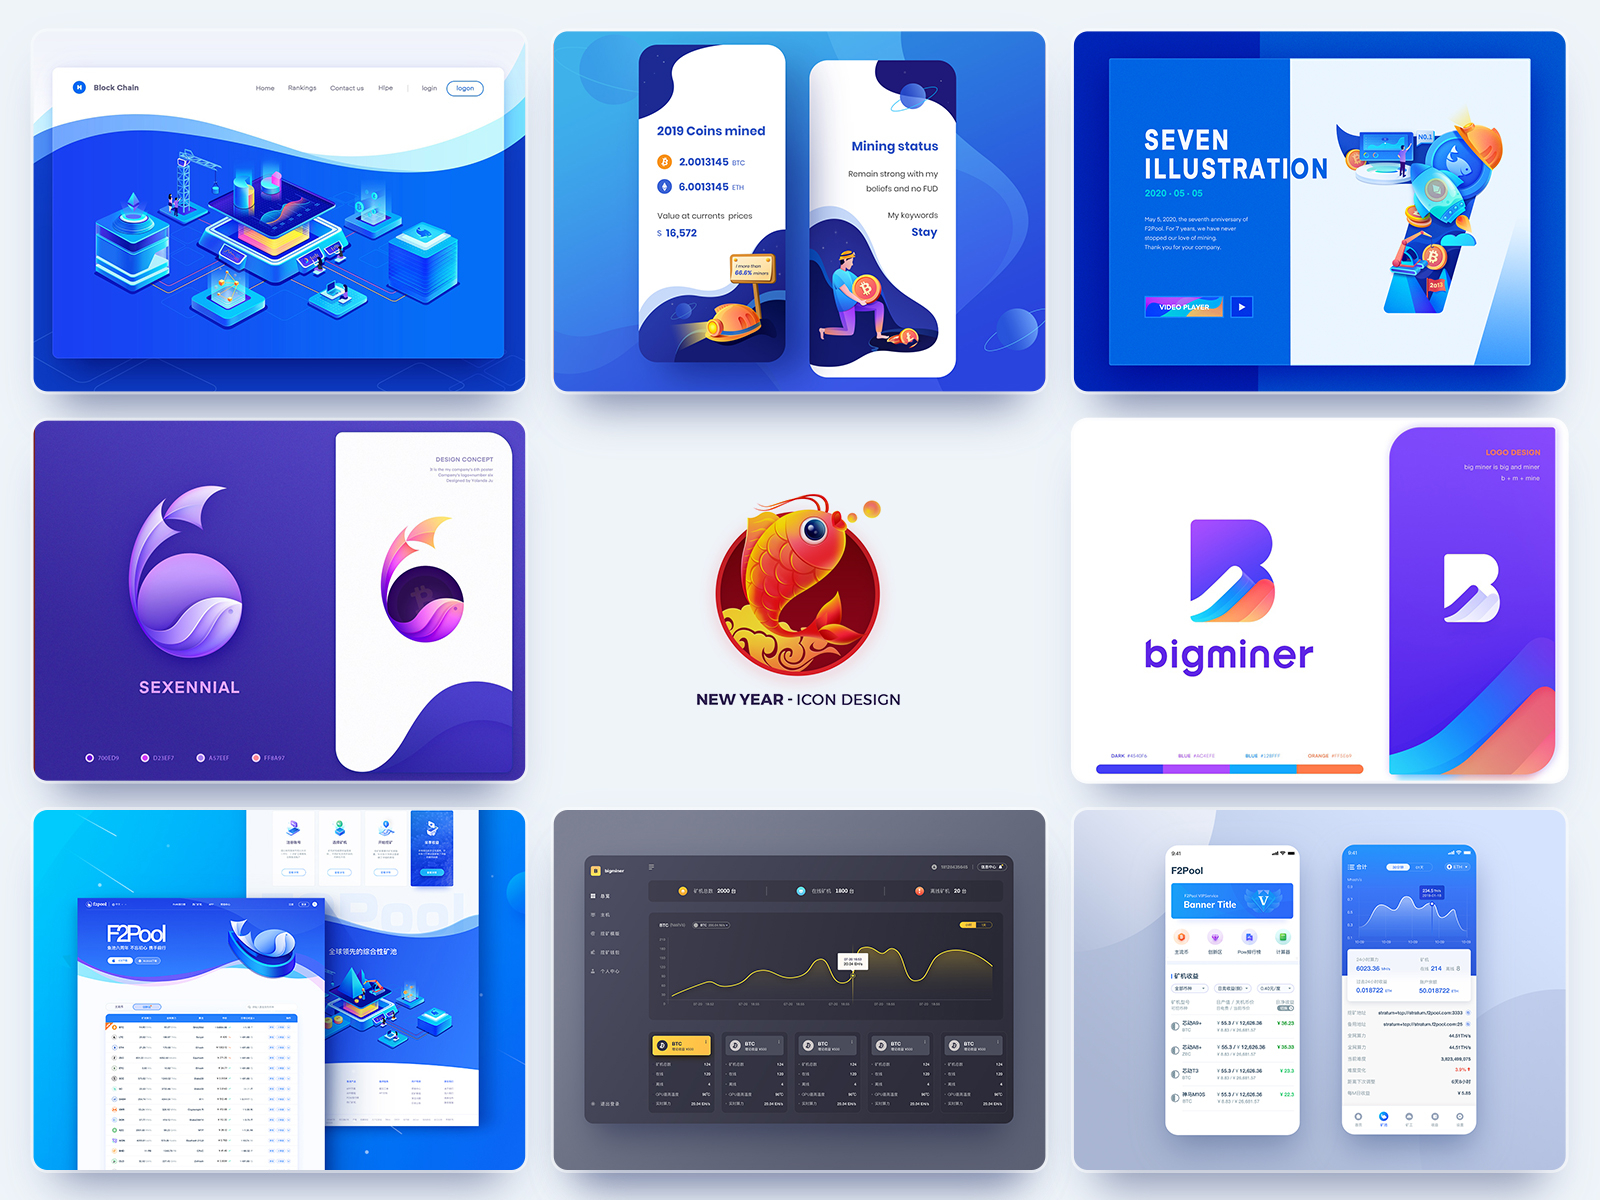 2018-2020 Company Design uidesigner top 9 new year six visual style guide banner dashboard ui web design ios app design illustration numbers icon design logo design people landingpage brand book gradient branding protfolio